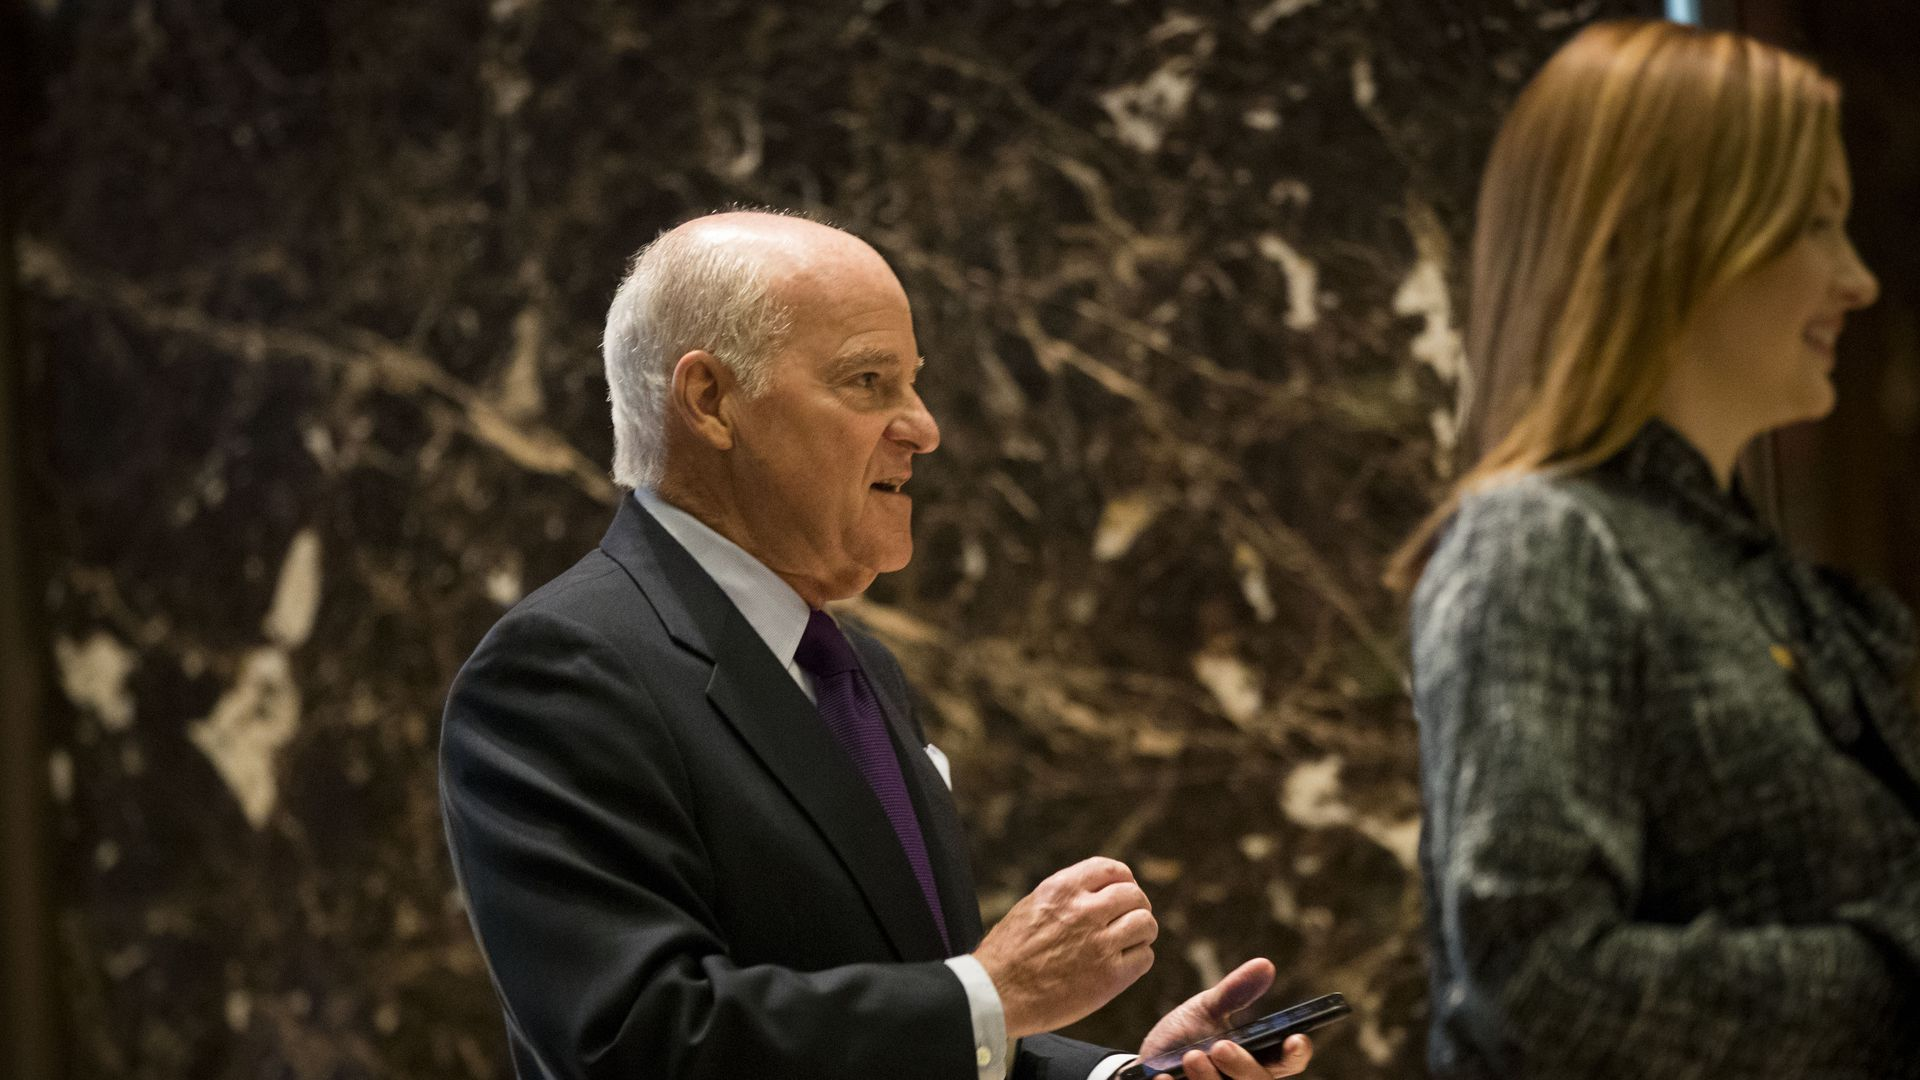 KKR co-founder Henry Kravis enters Trump Tower.